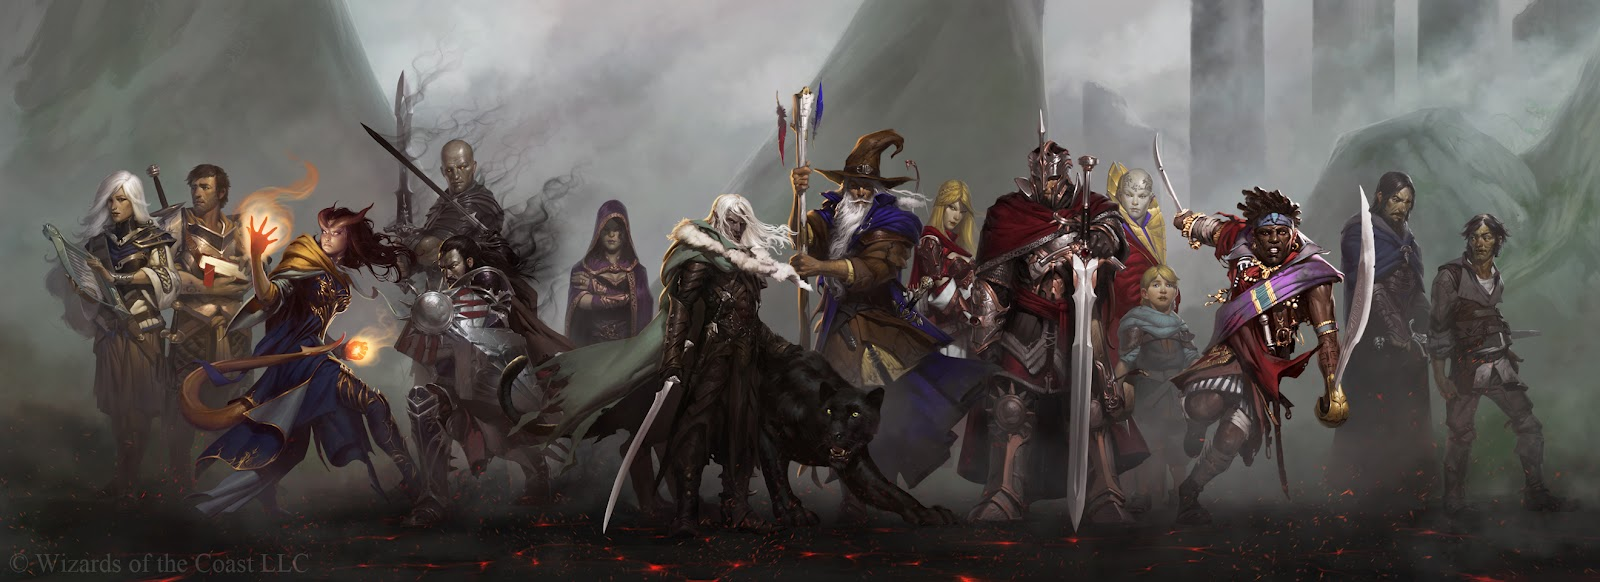 Sundering lineup tyler jacobson